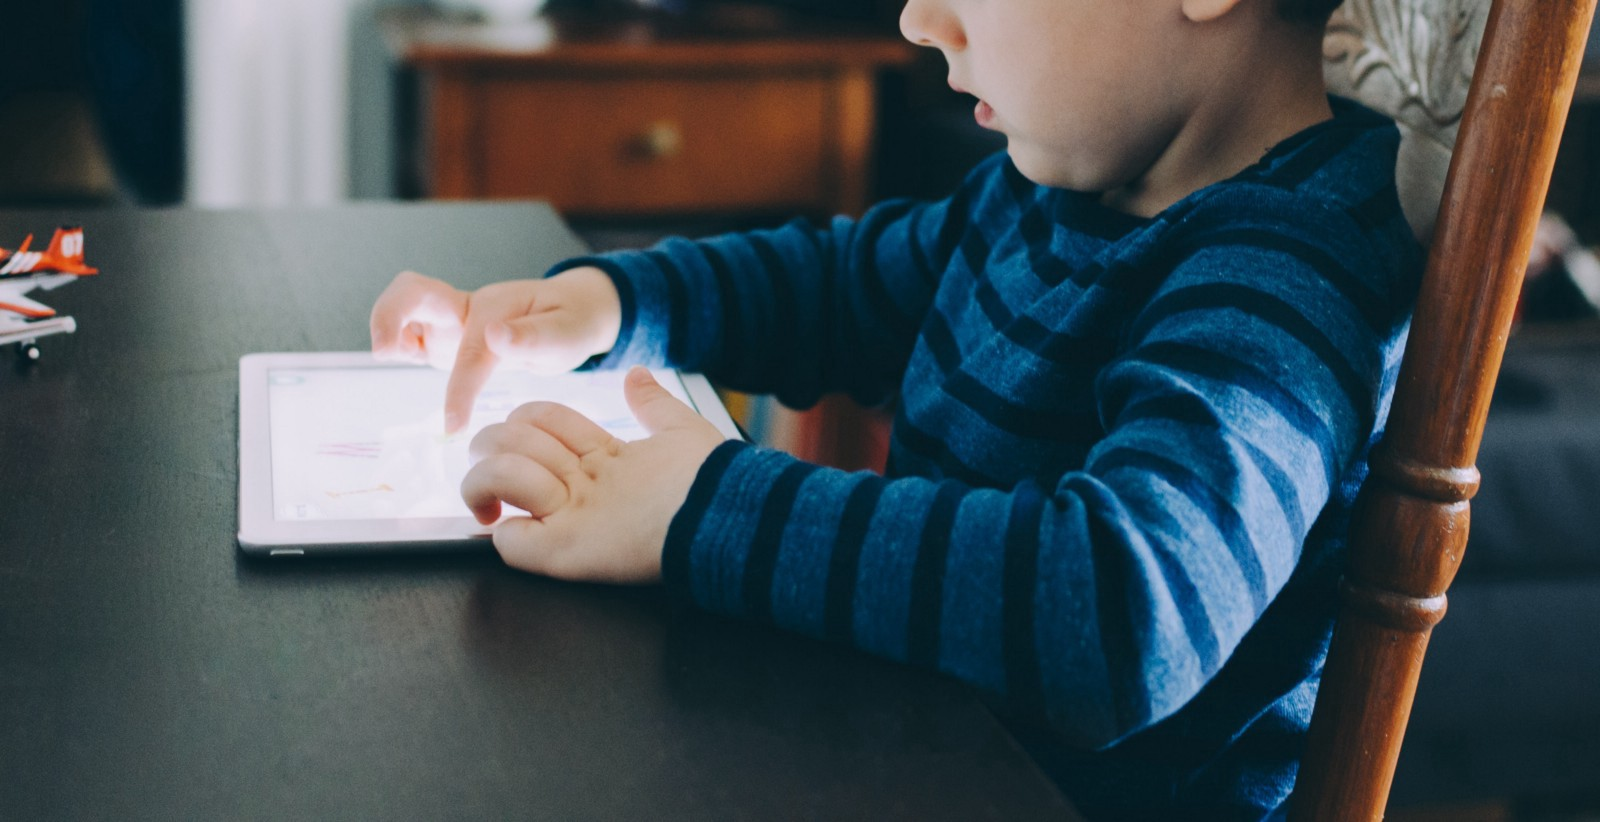 Baby and TV: 7 habits of correct viewing